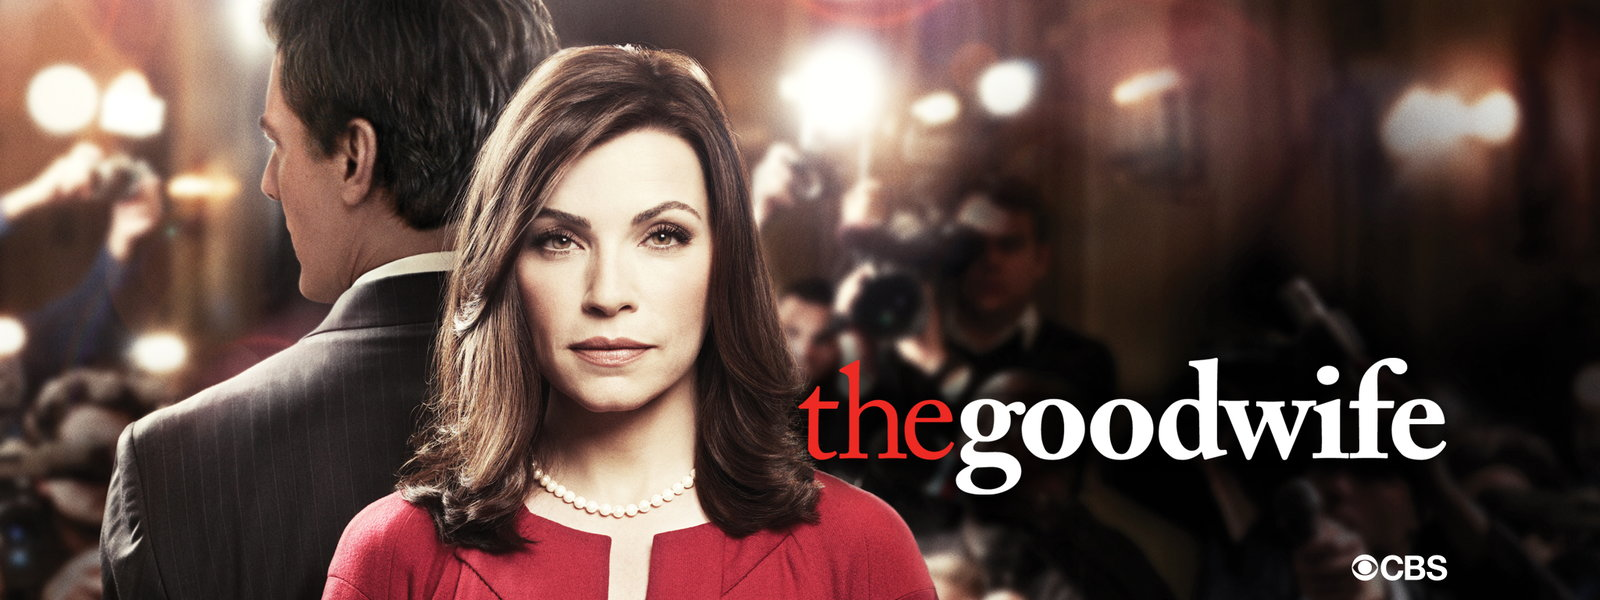 The Good Wife, TV Series, CBS